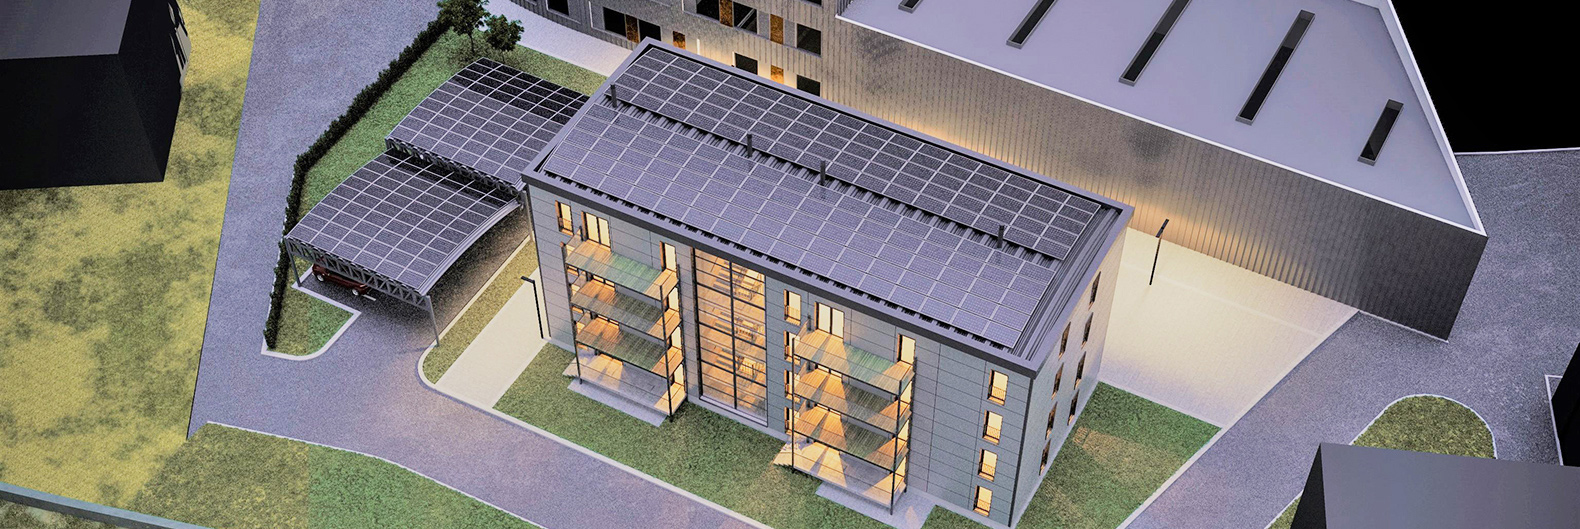 Prefabricated Housing Inhabitat Green Design Innovation Architecture Green Building